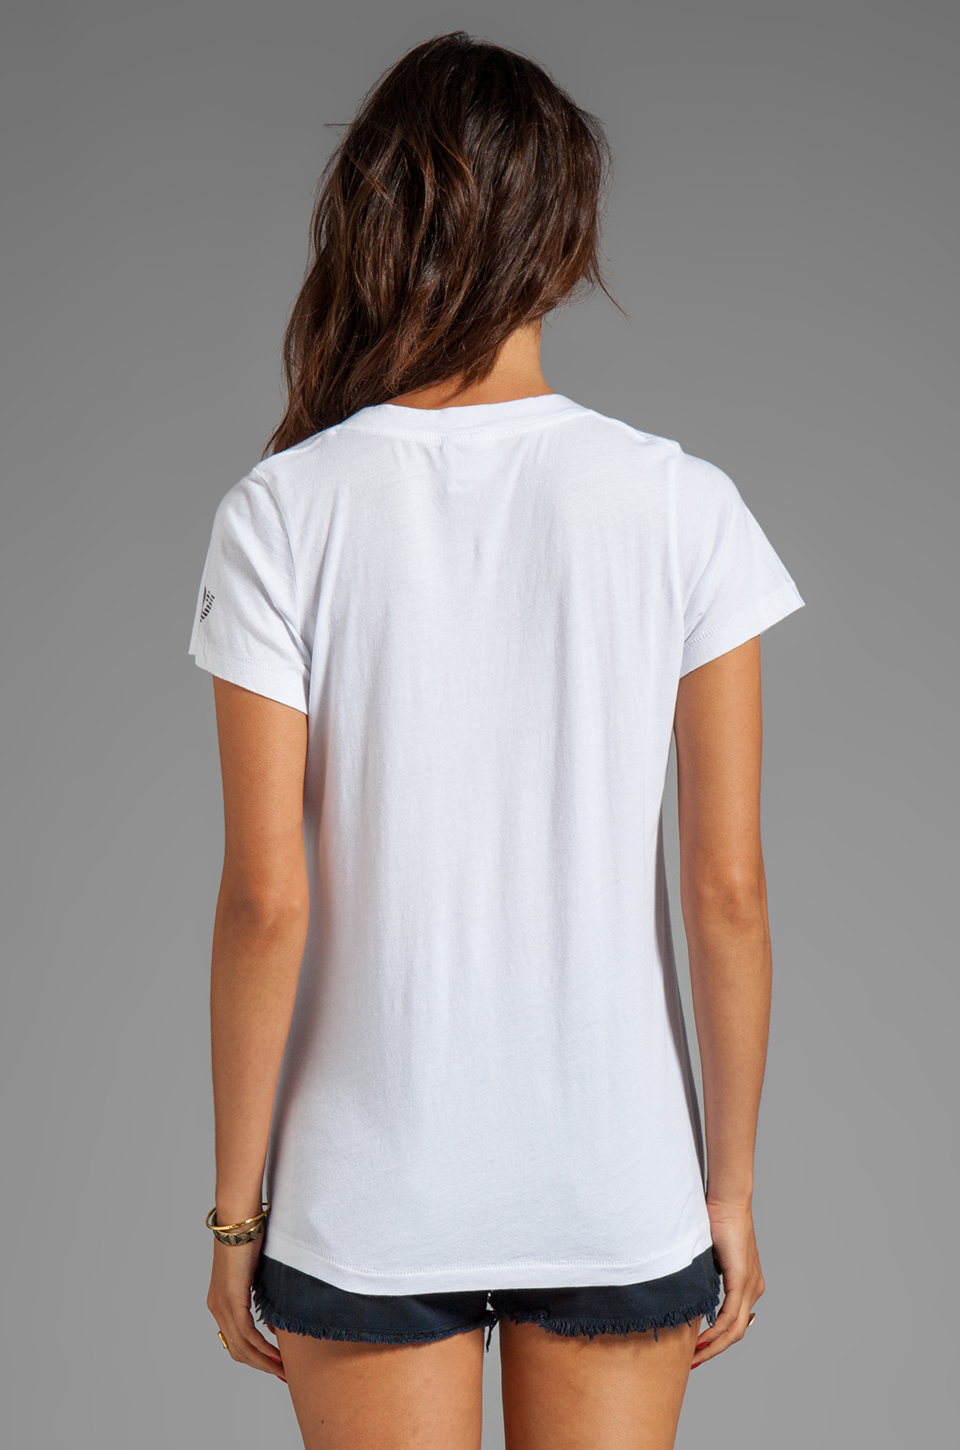 Rebel Yell Say No Classics V Tee in White